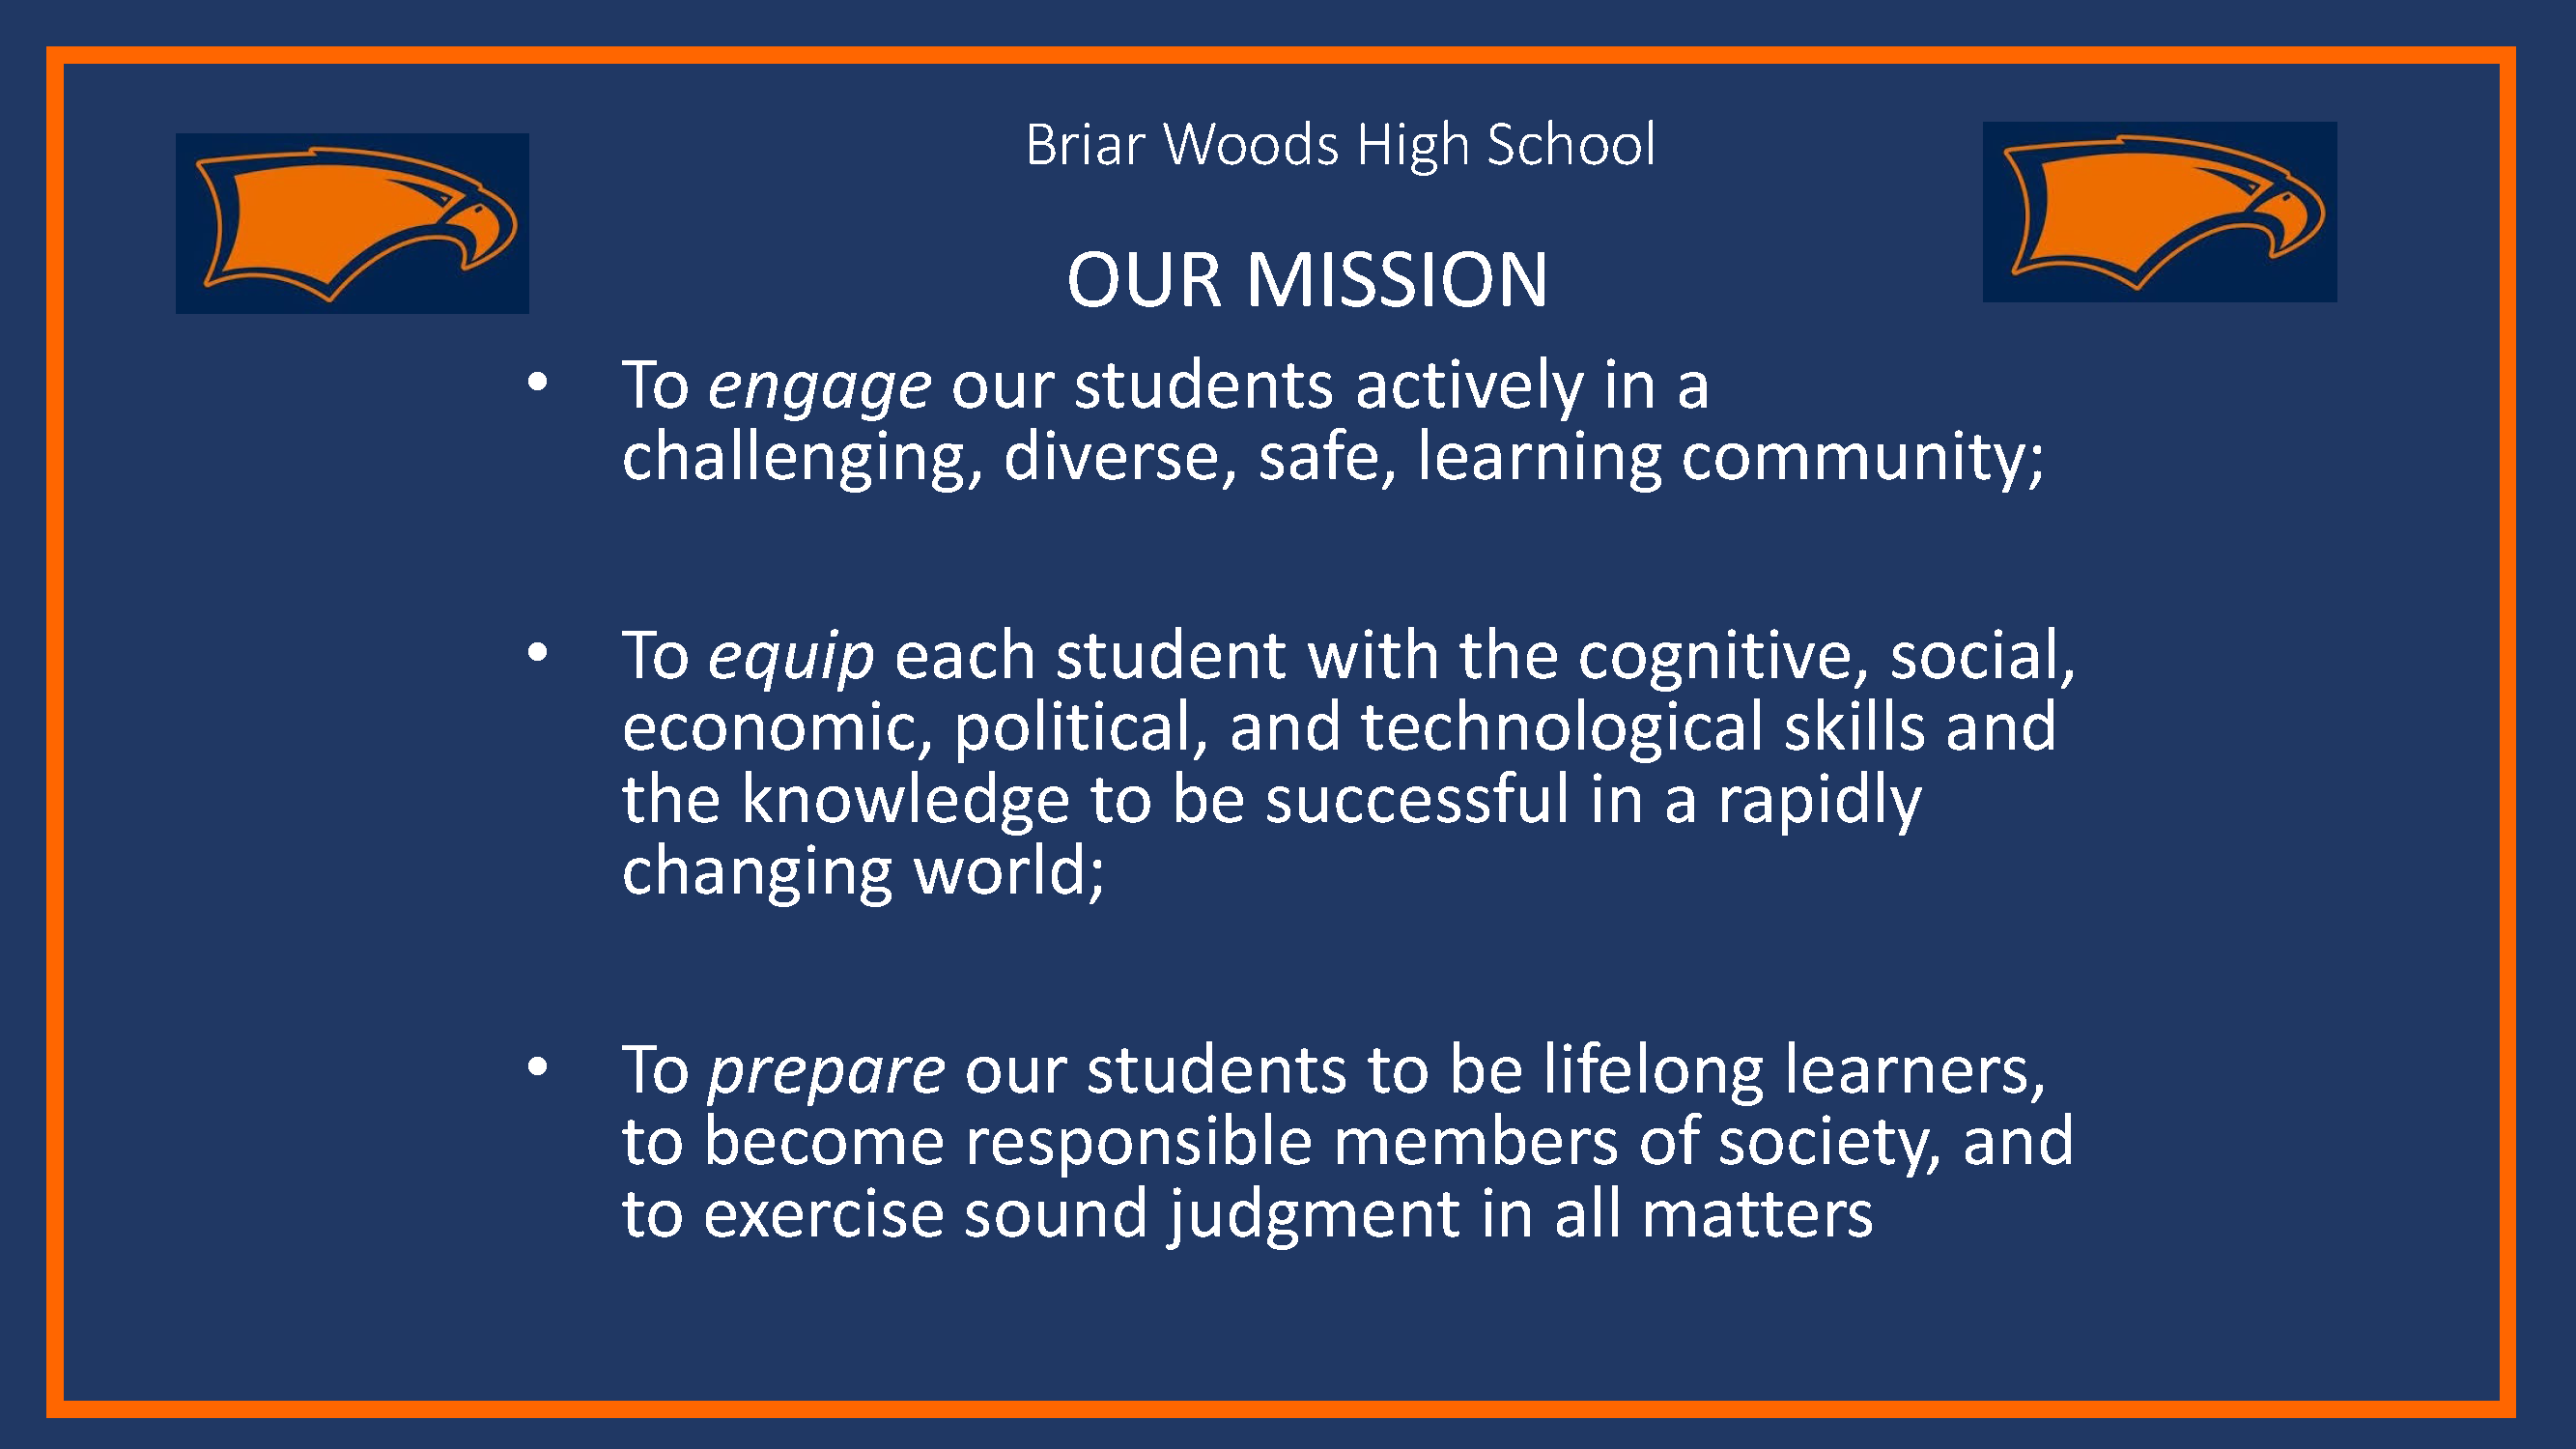 Briar Woods High School Our Mission